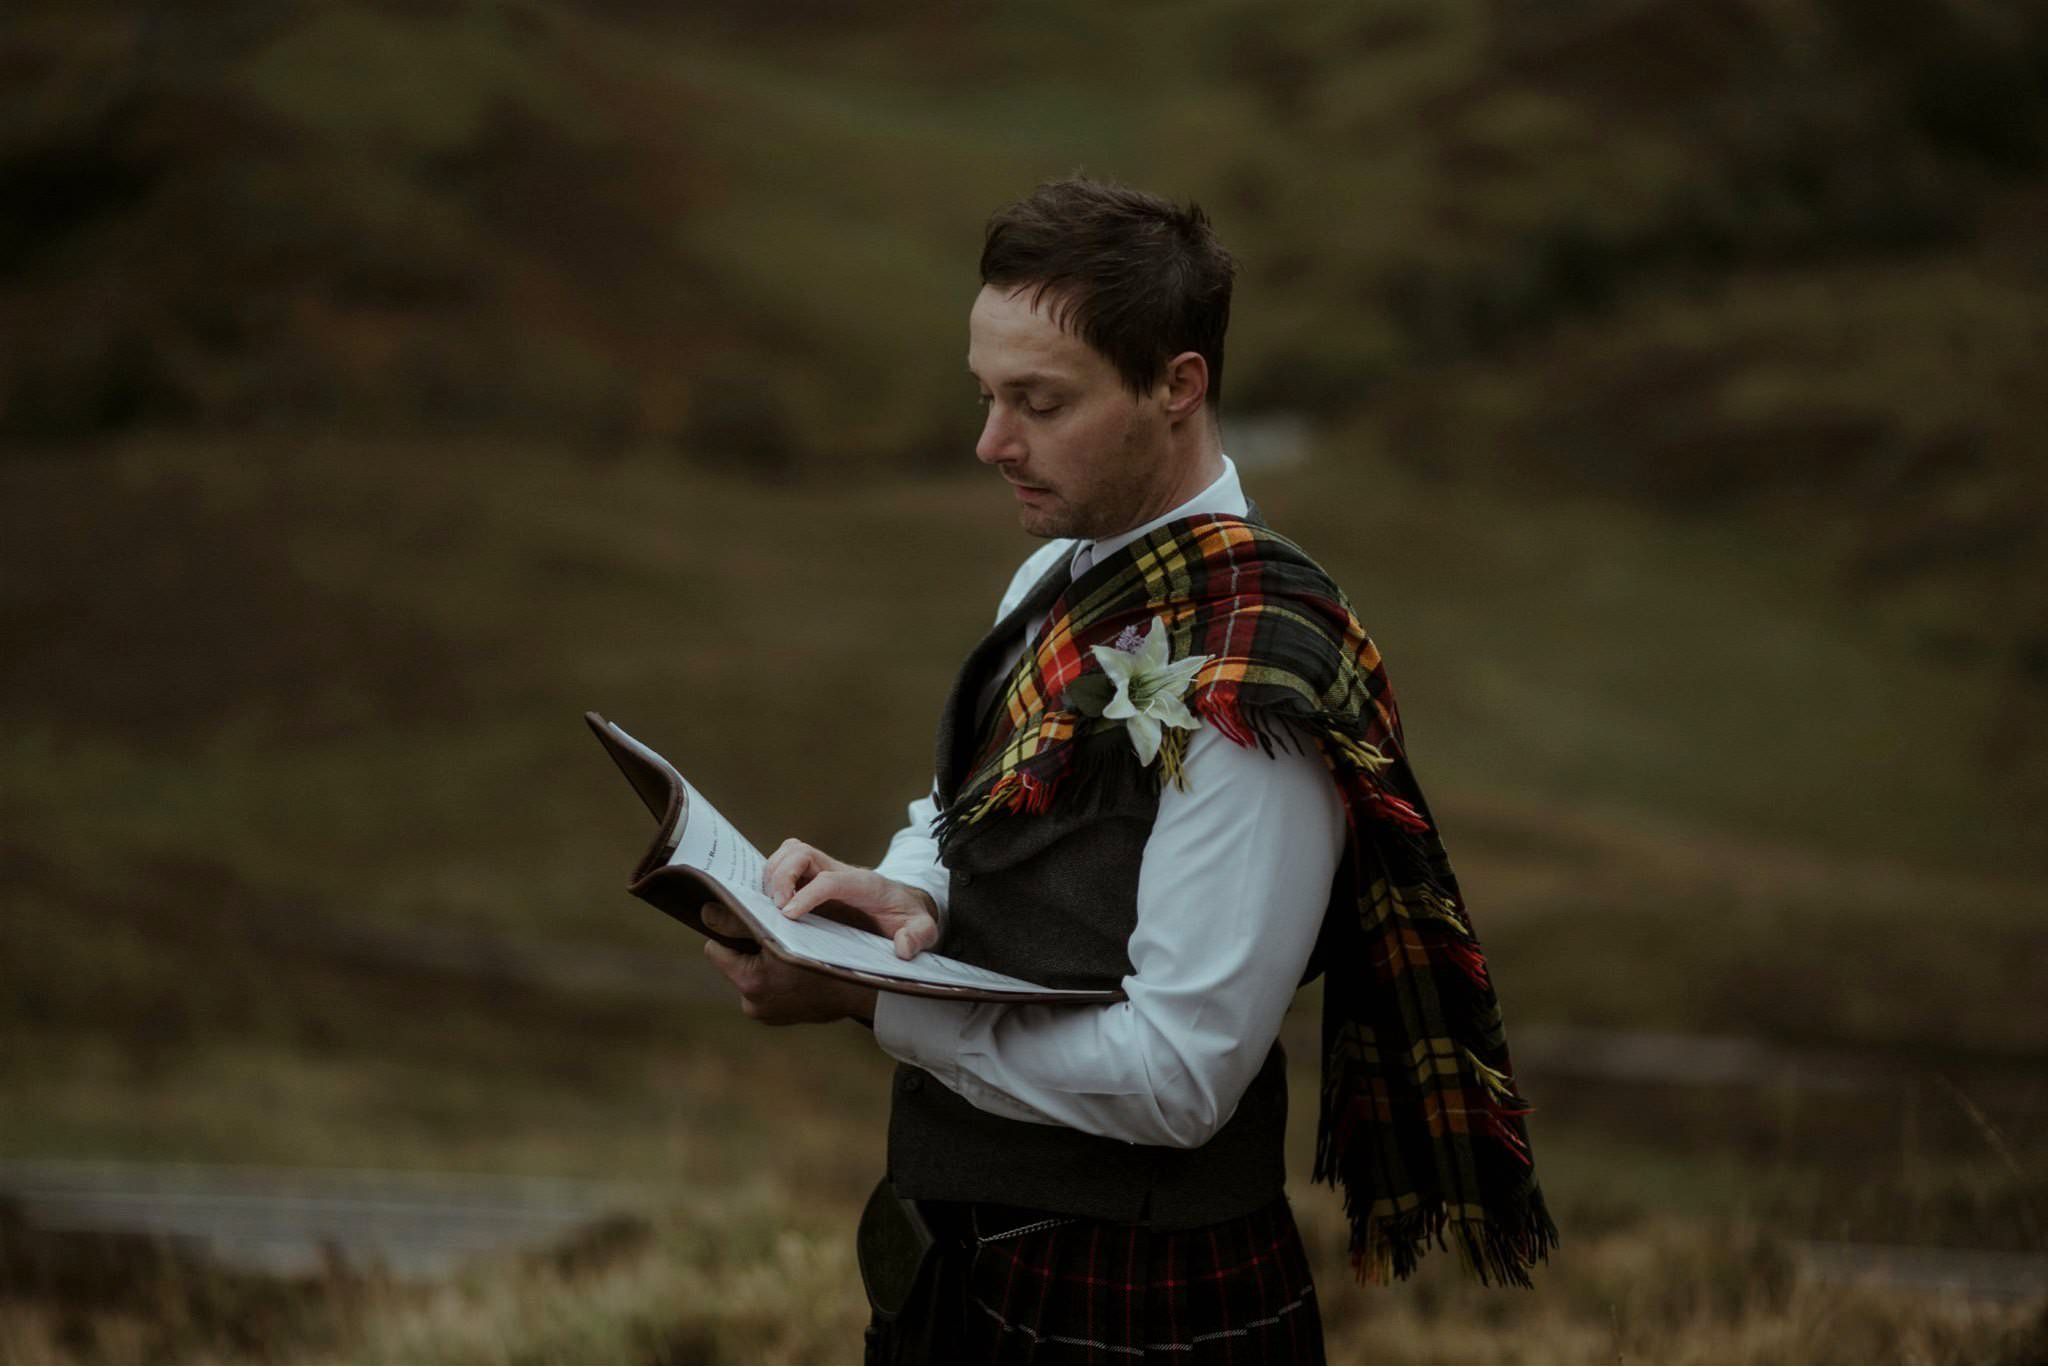 Humanist celebrant Ashton Easter conducts and elopement wedding in Glencoe